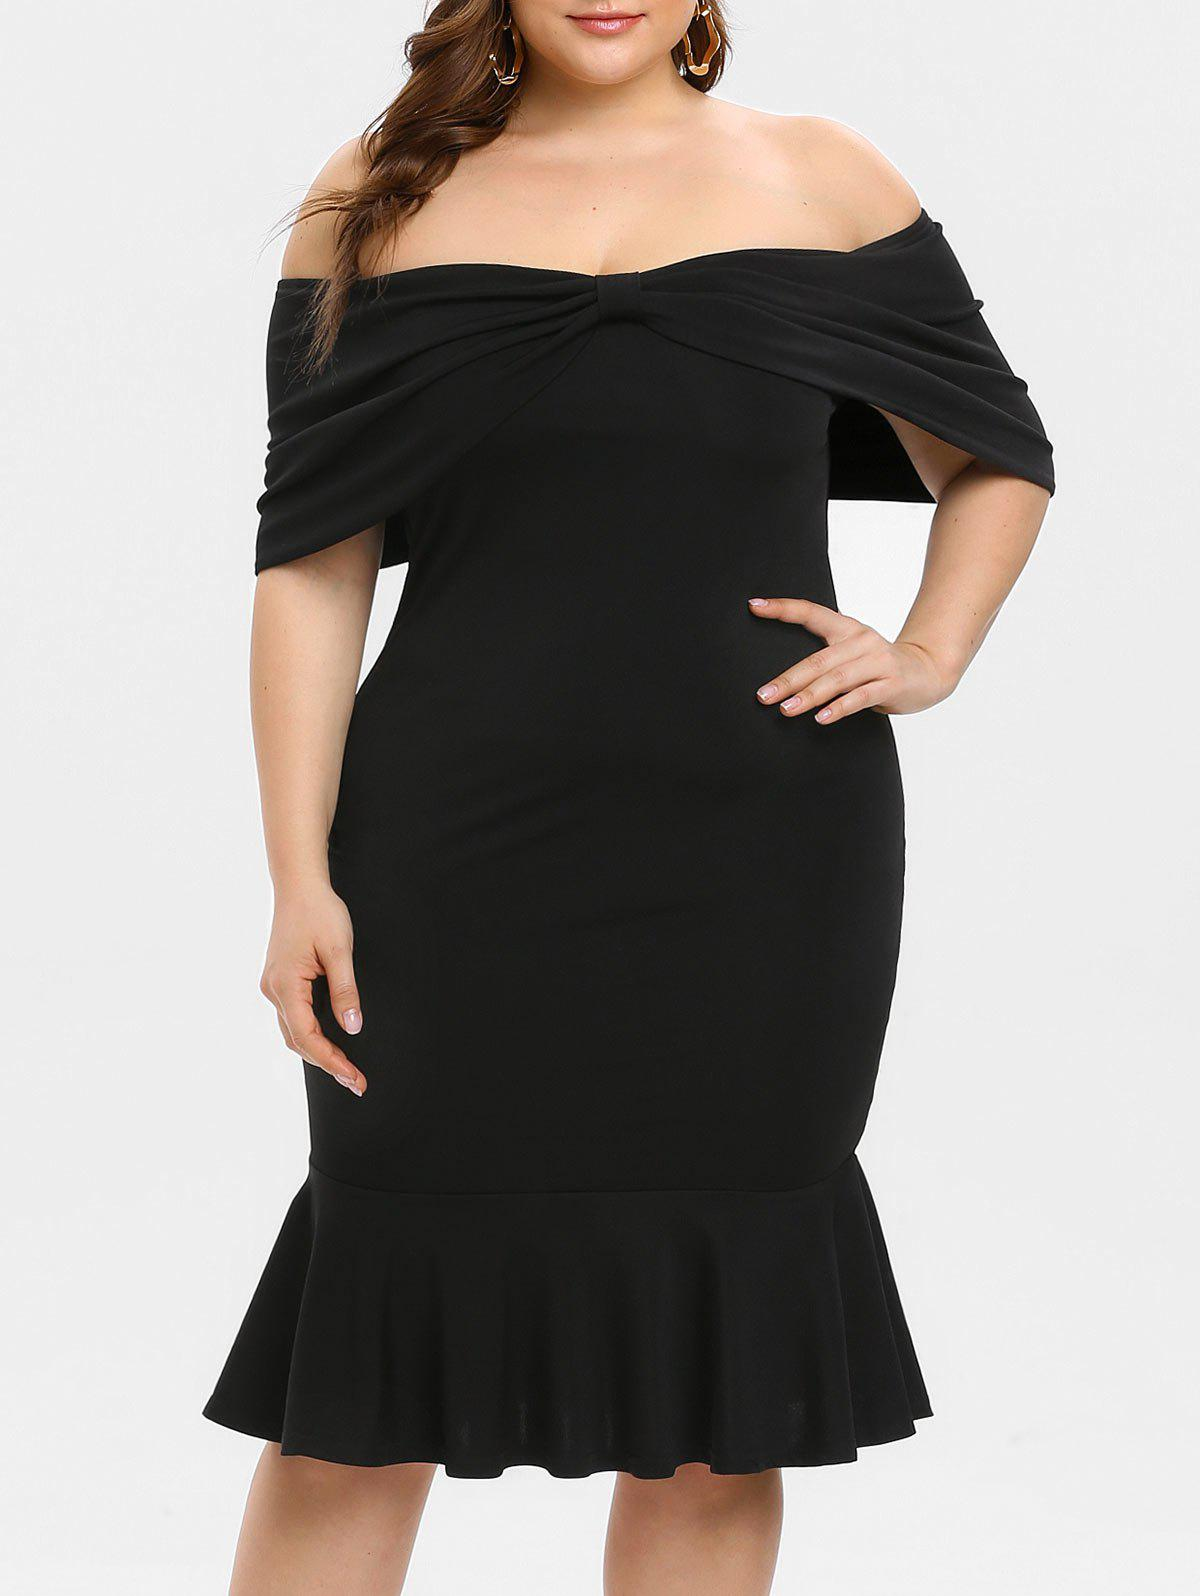 Plus Size Off Shoulder Bodycon Dress Mermaid - BLACK 2X